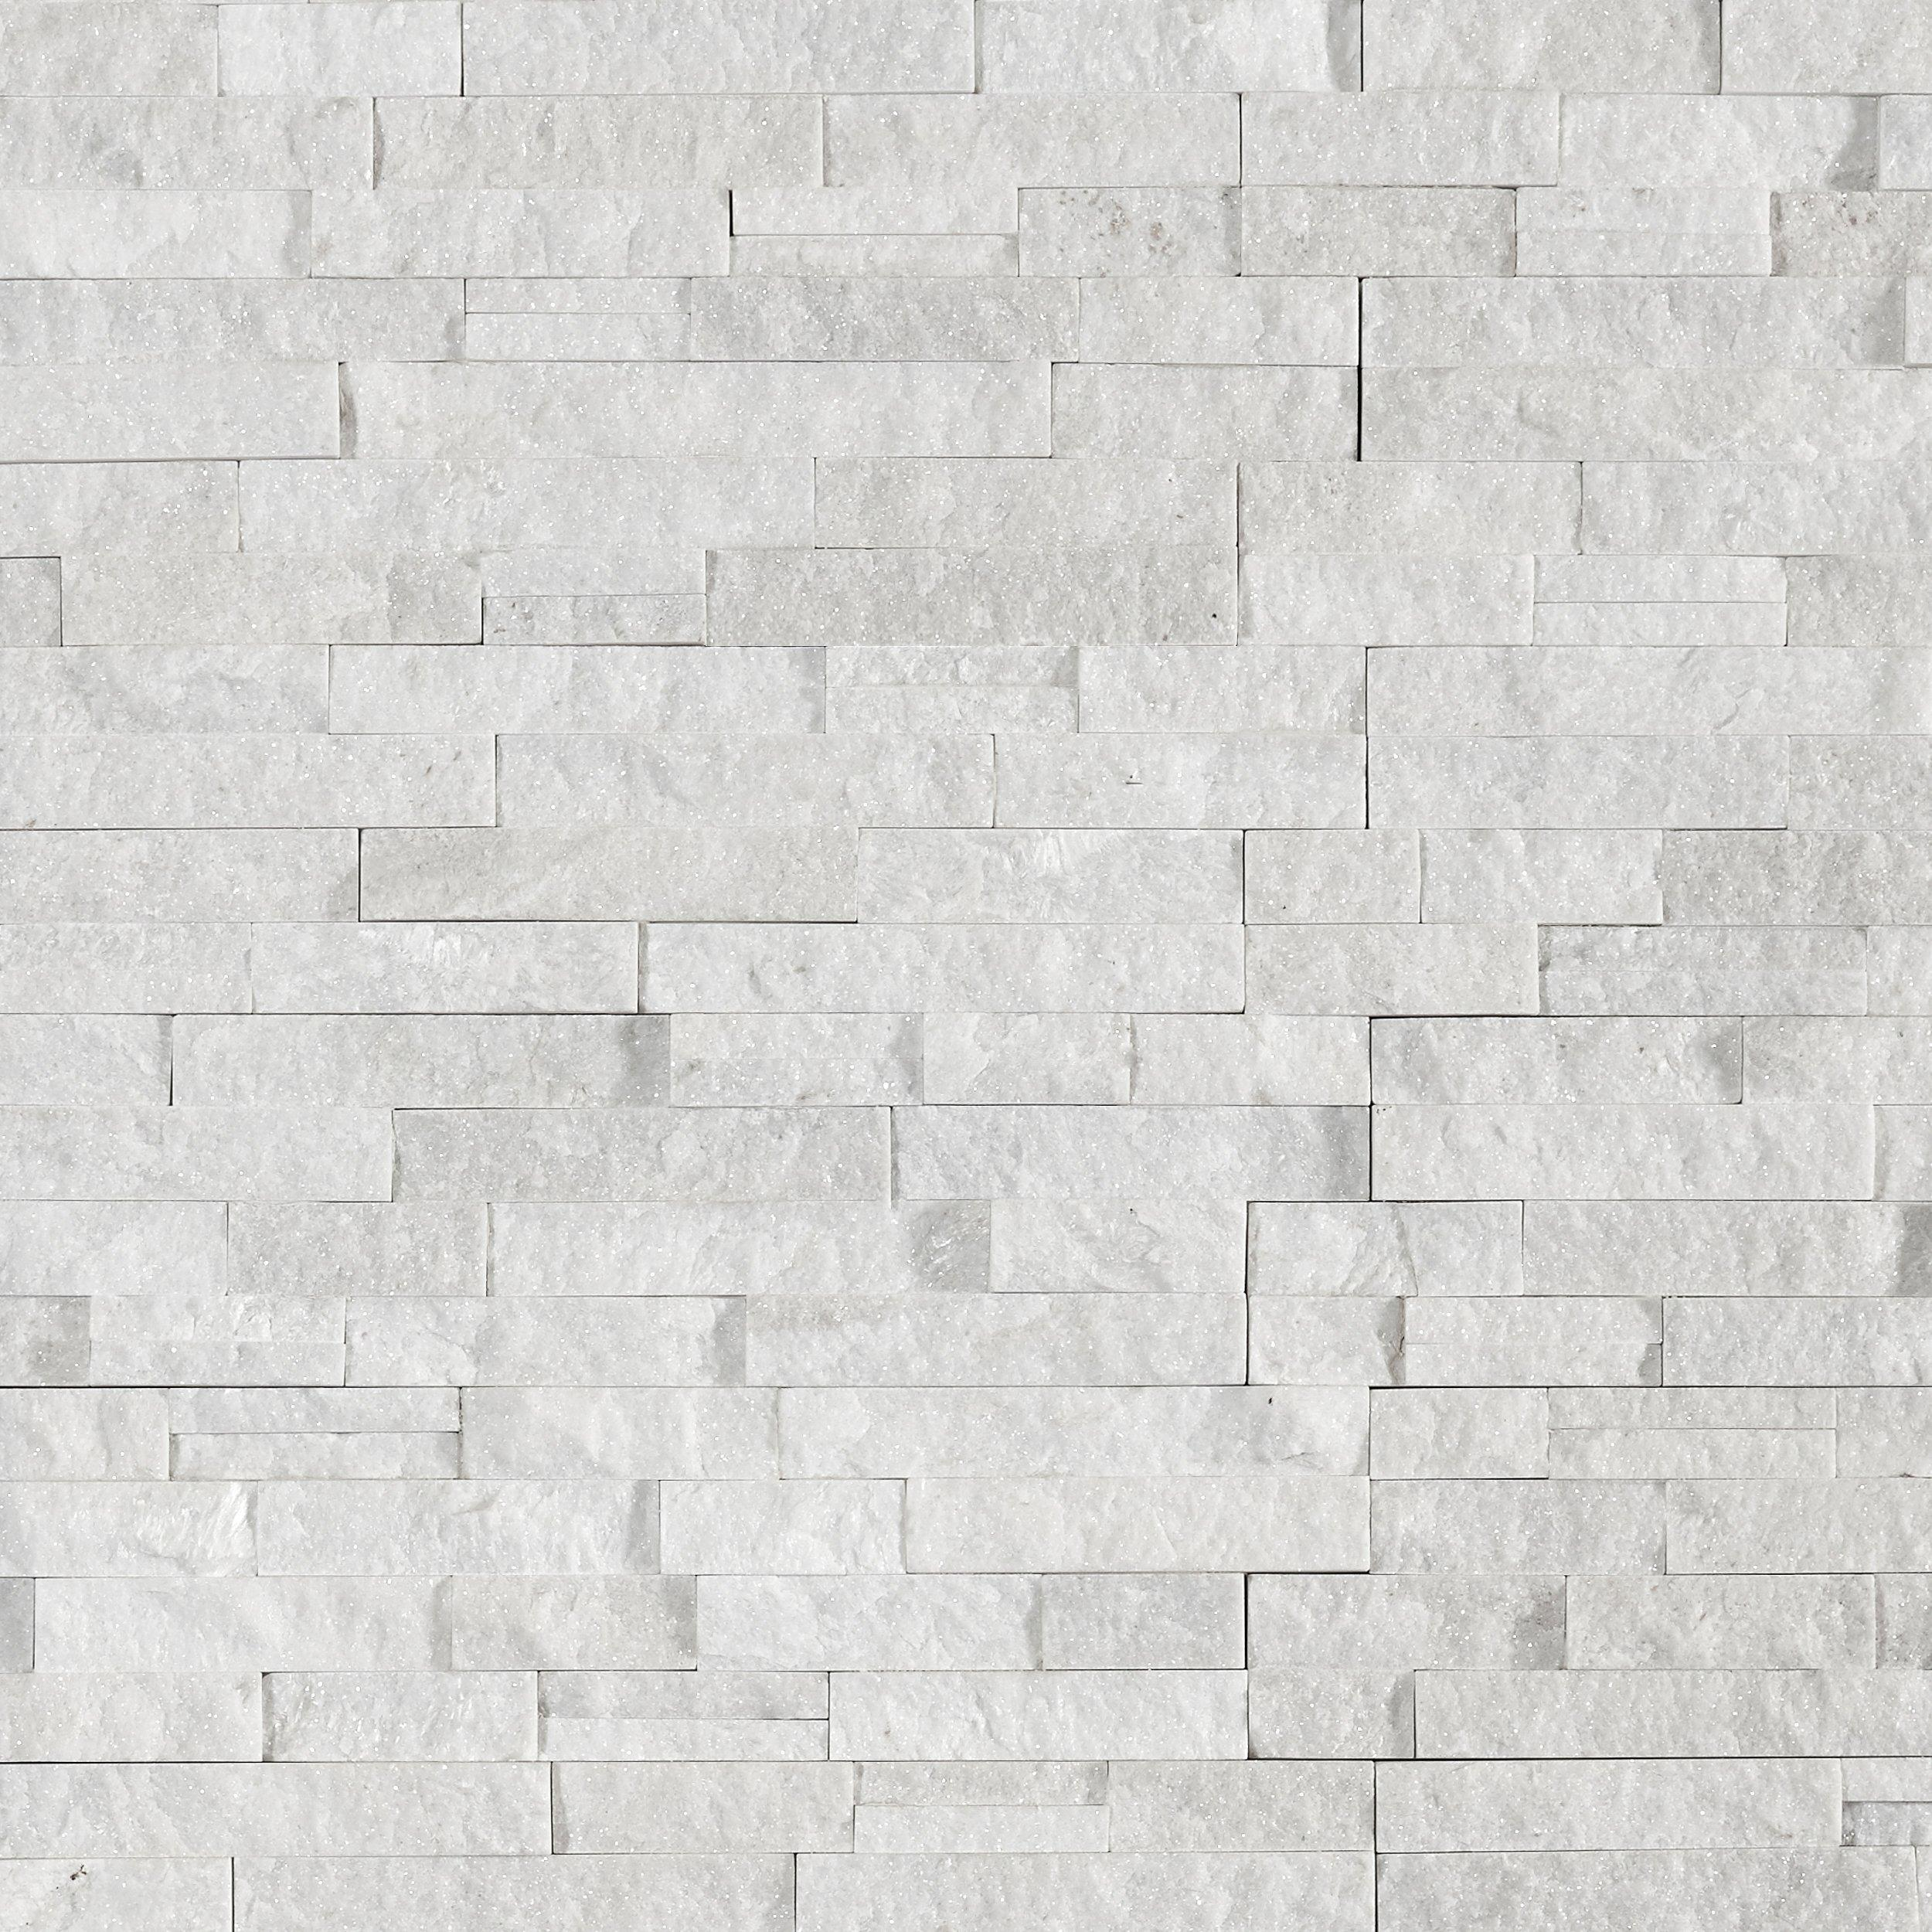 Glacier Splitface Quartzite Panel Ledger  sc 1 st  Floor u0026 Decor & Outdoor Tile | Floor u0026 Decor